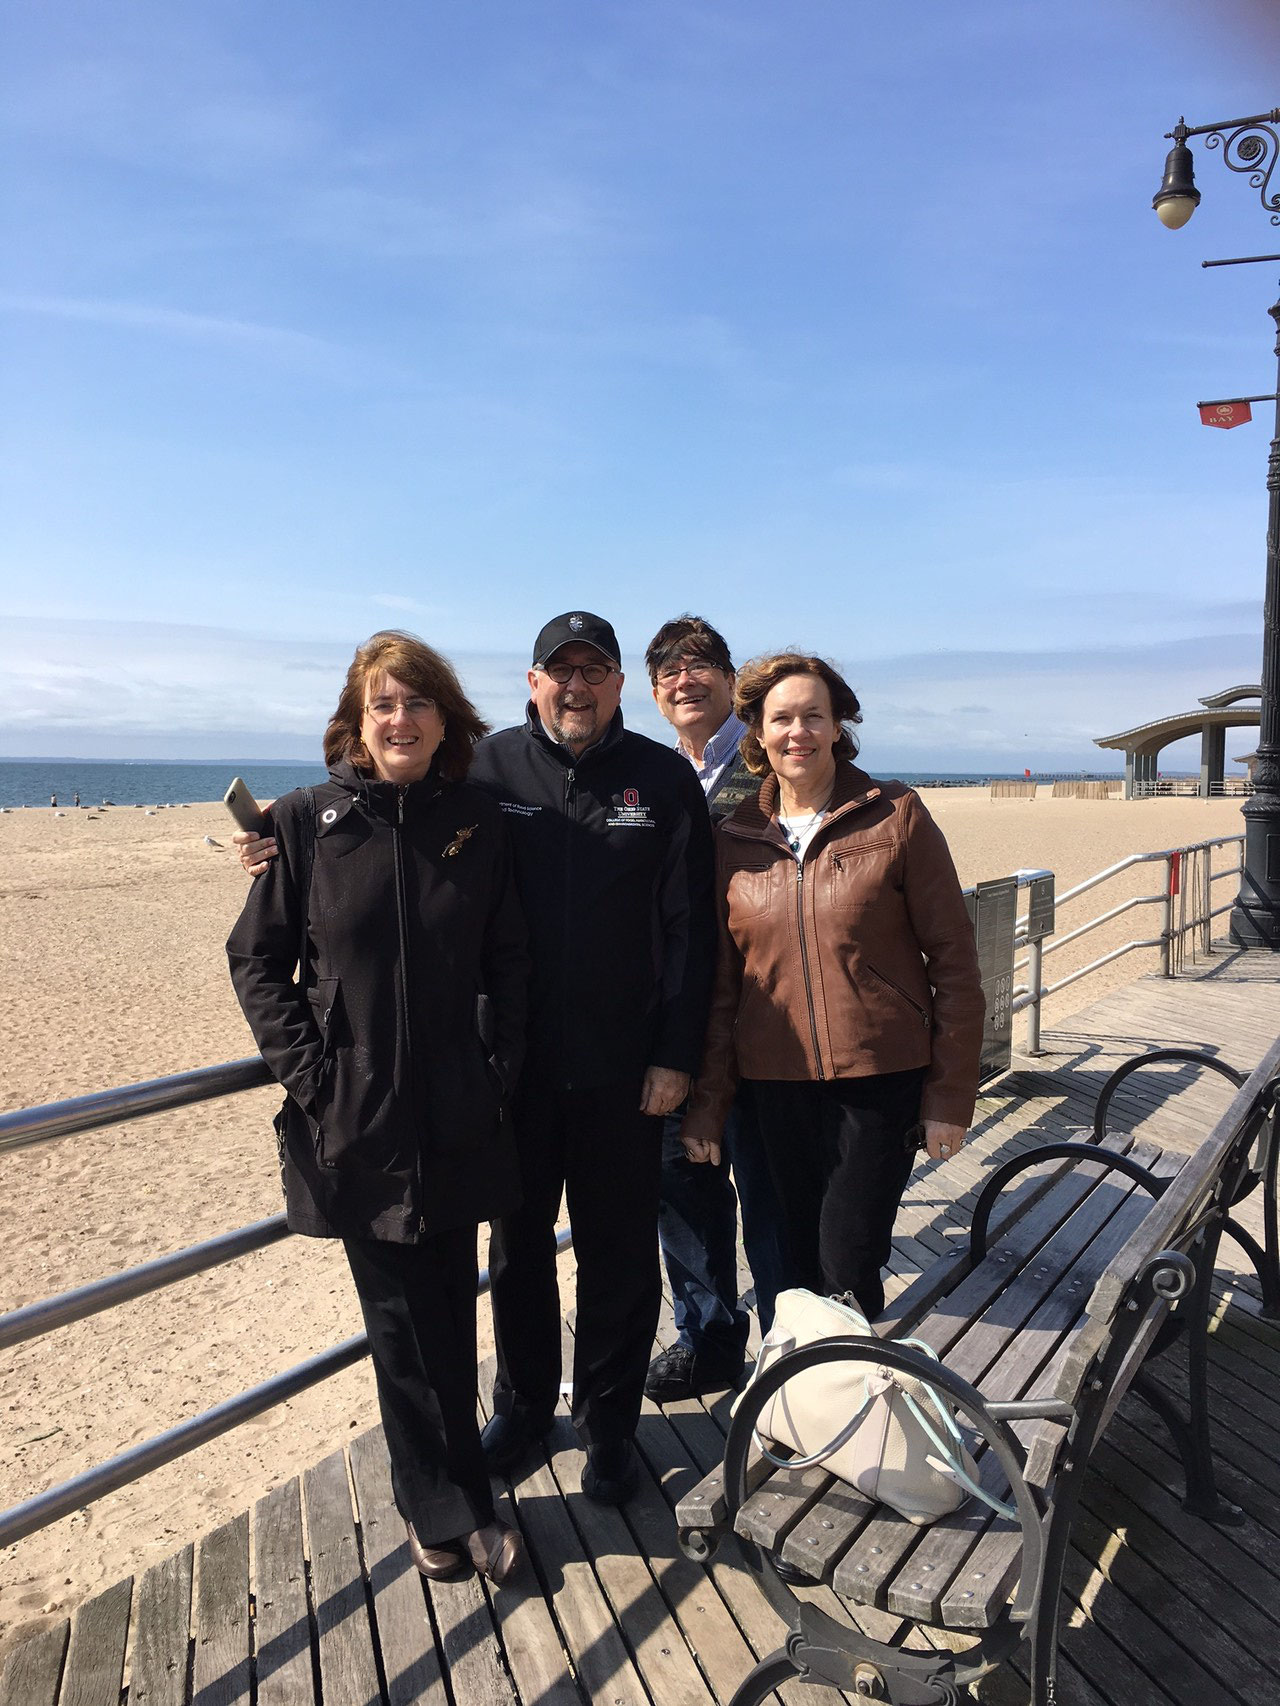 Sandra, Steve, John & Lorraine, Brighton Beach, Brooklyn Easter Sunday, 2016